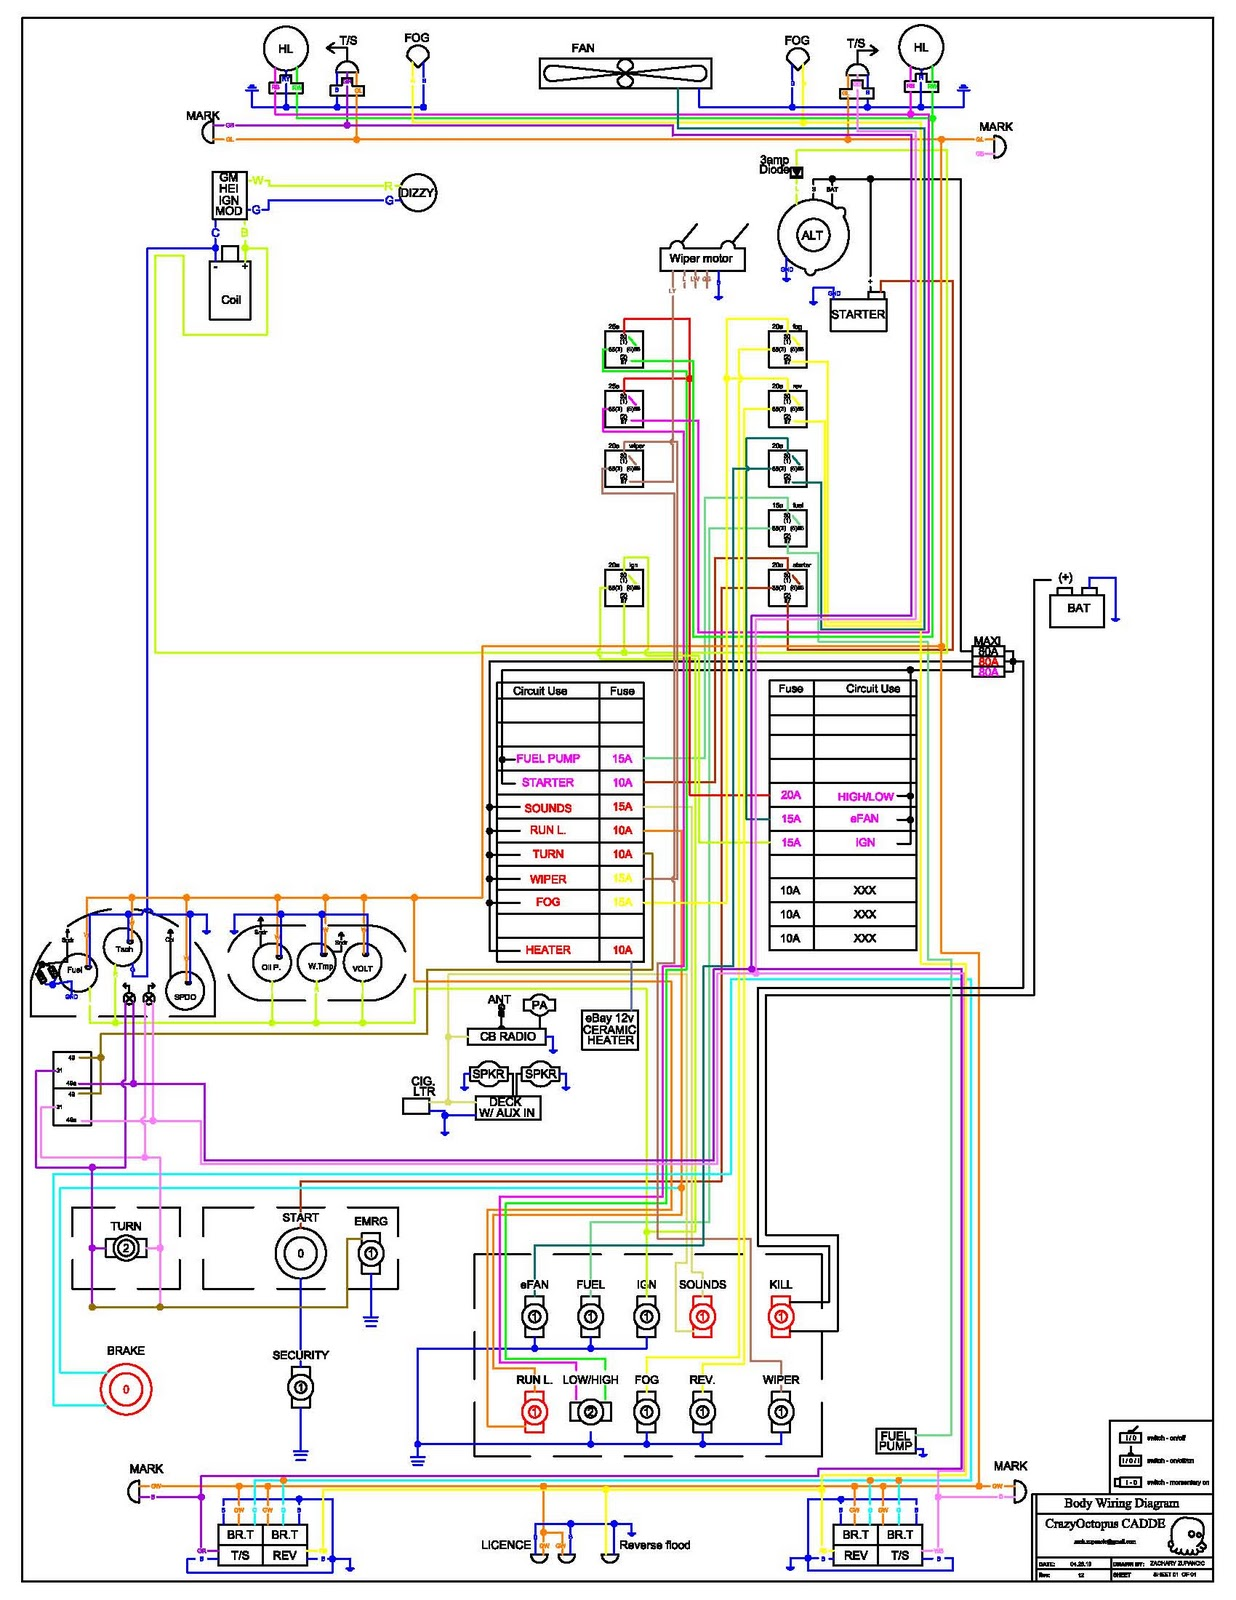 240z+wiring+r12 my 240z 240z wiring diagram at webbmarketing.co